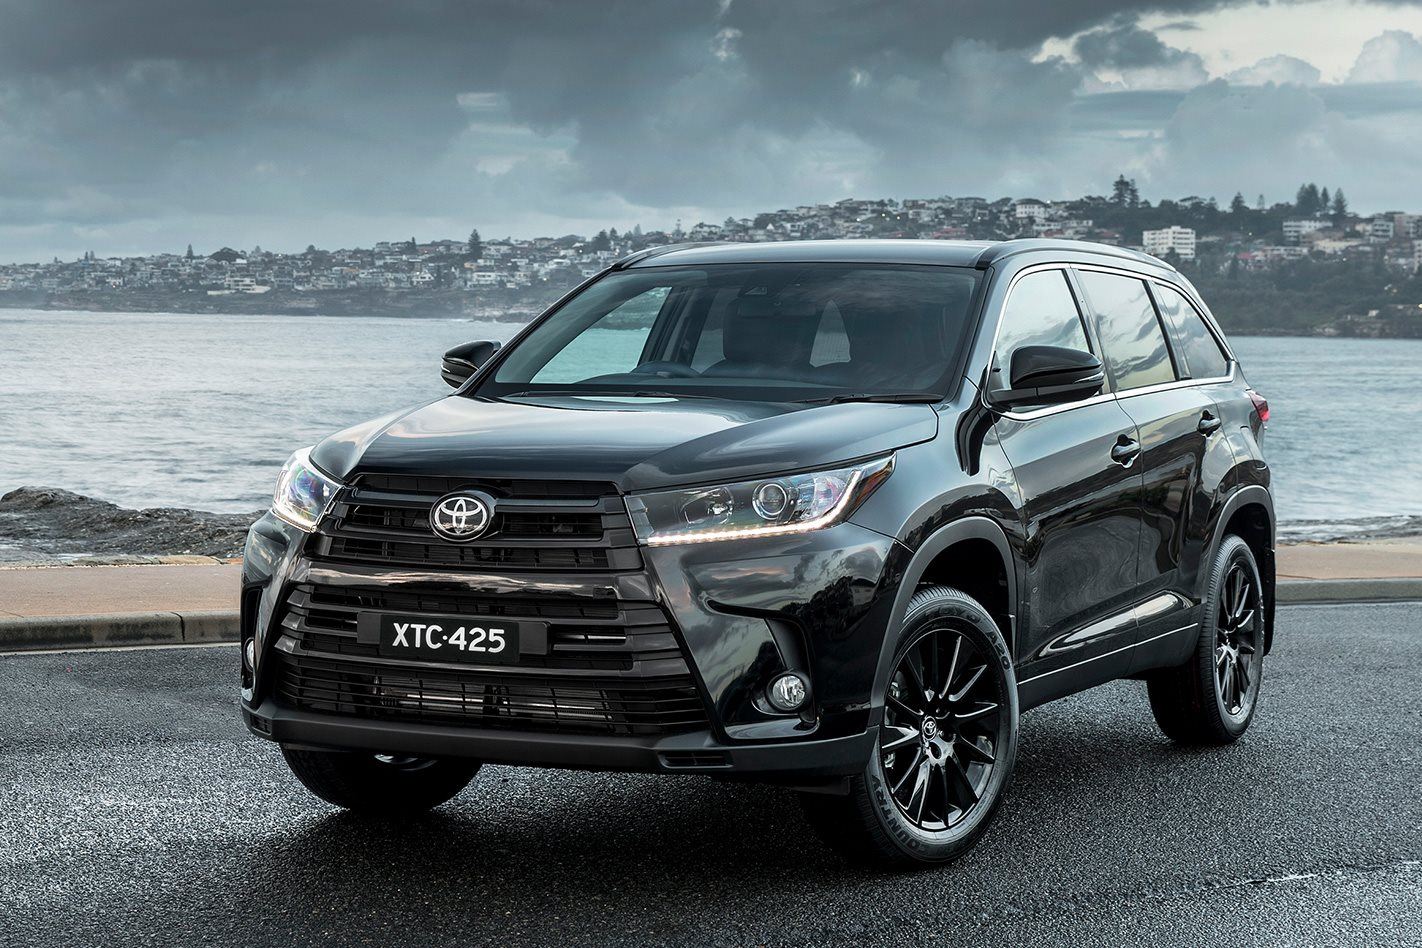 2019 Toyota Kluger Goes Dark With Black Edition